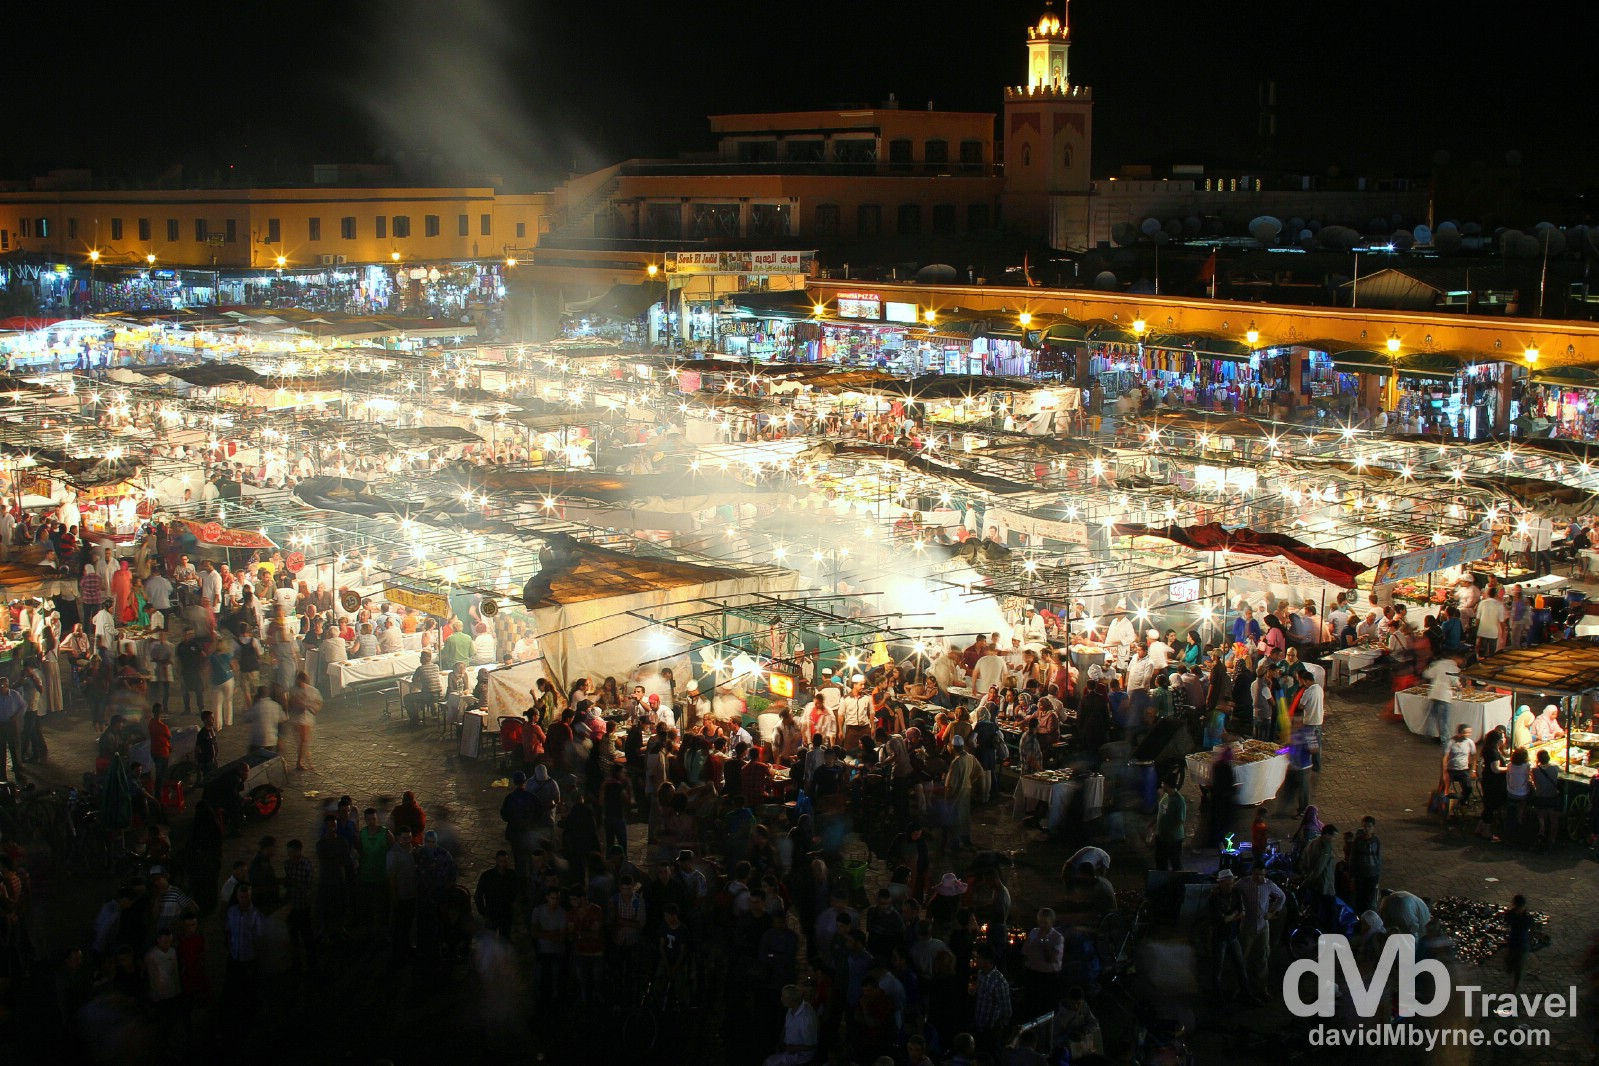 The food stalls erected nightly in the centre of the Djemma El-Fna, Marrakesh, Morocco. May 11th, 2014.